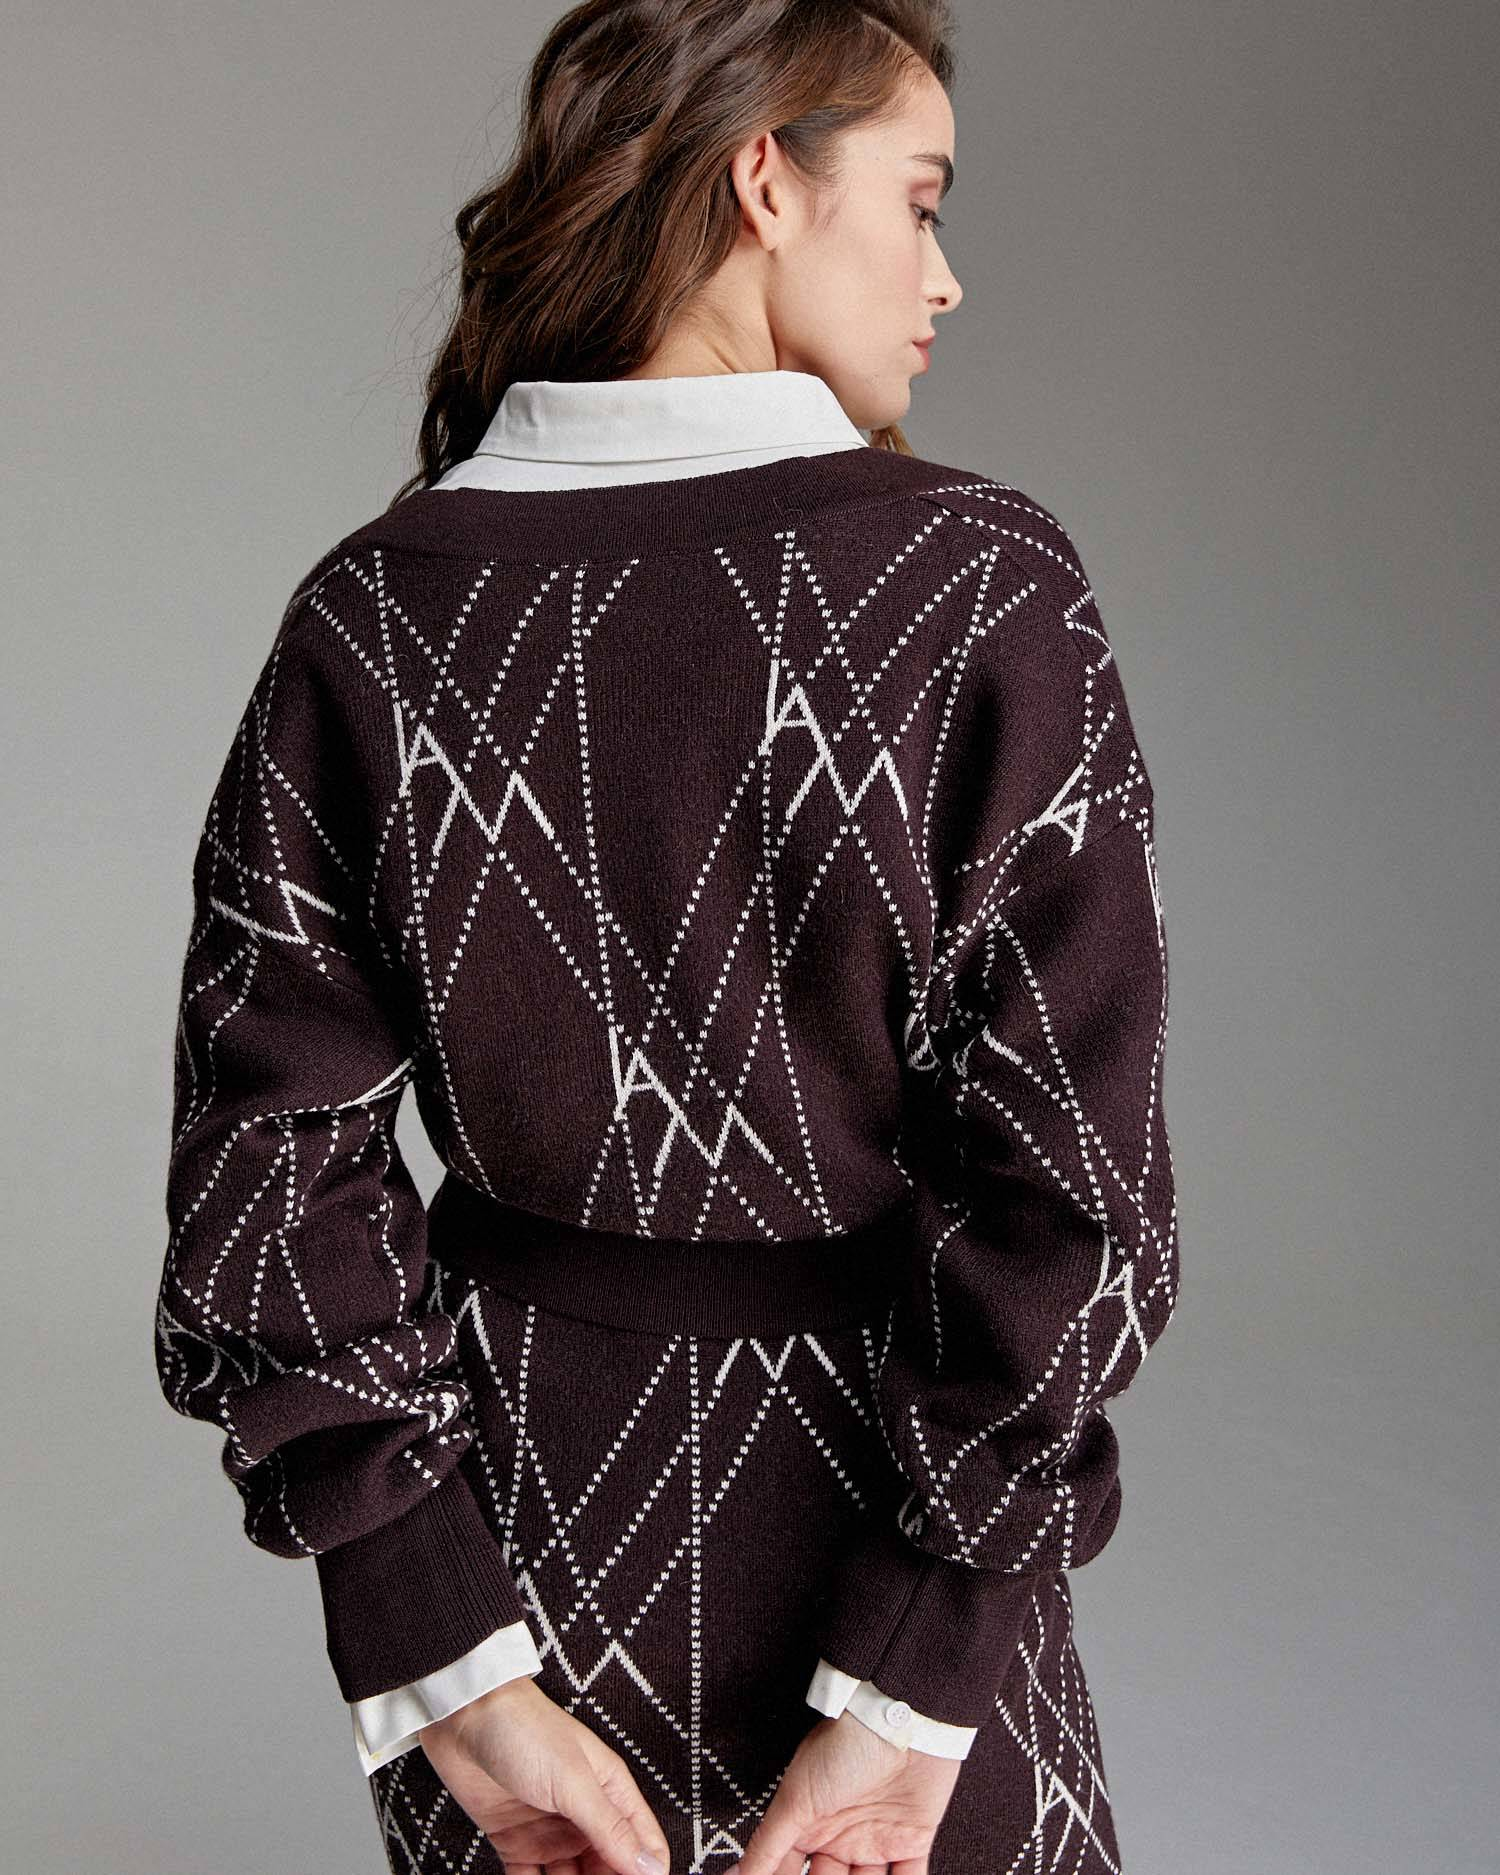 Cropped jacquard knit cardigan